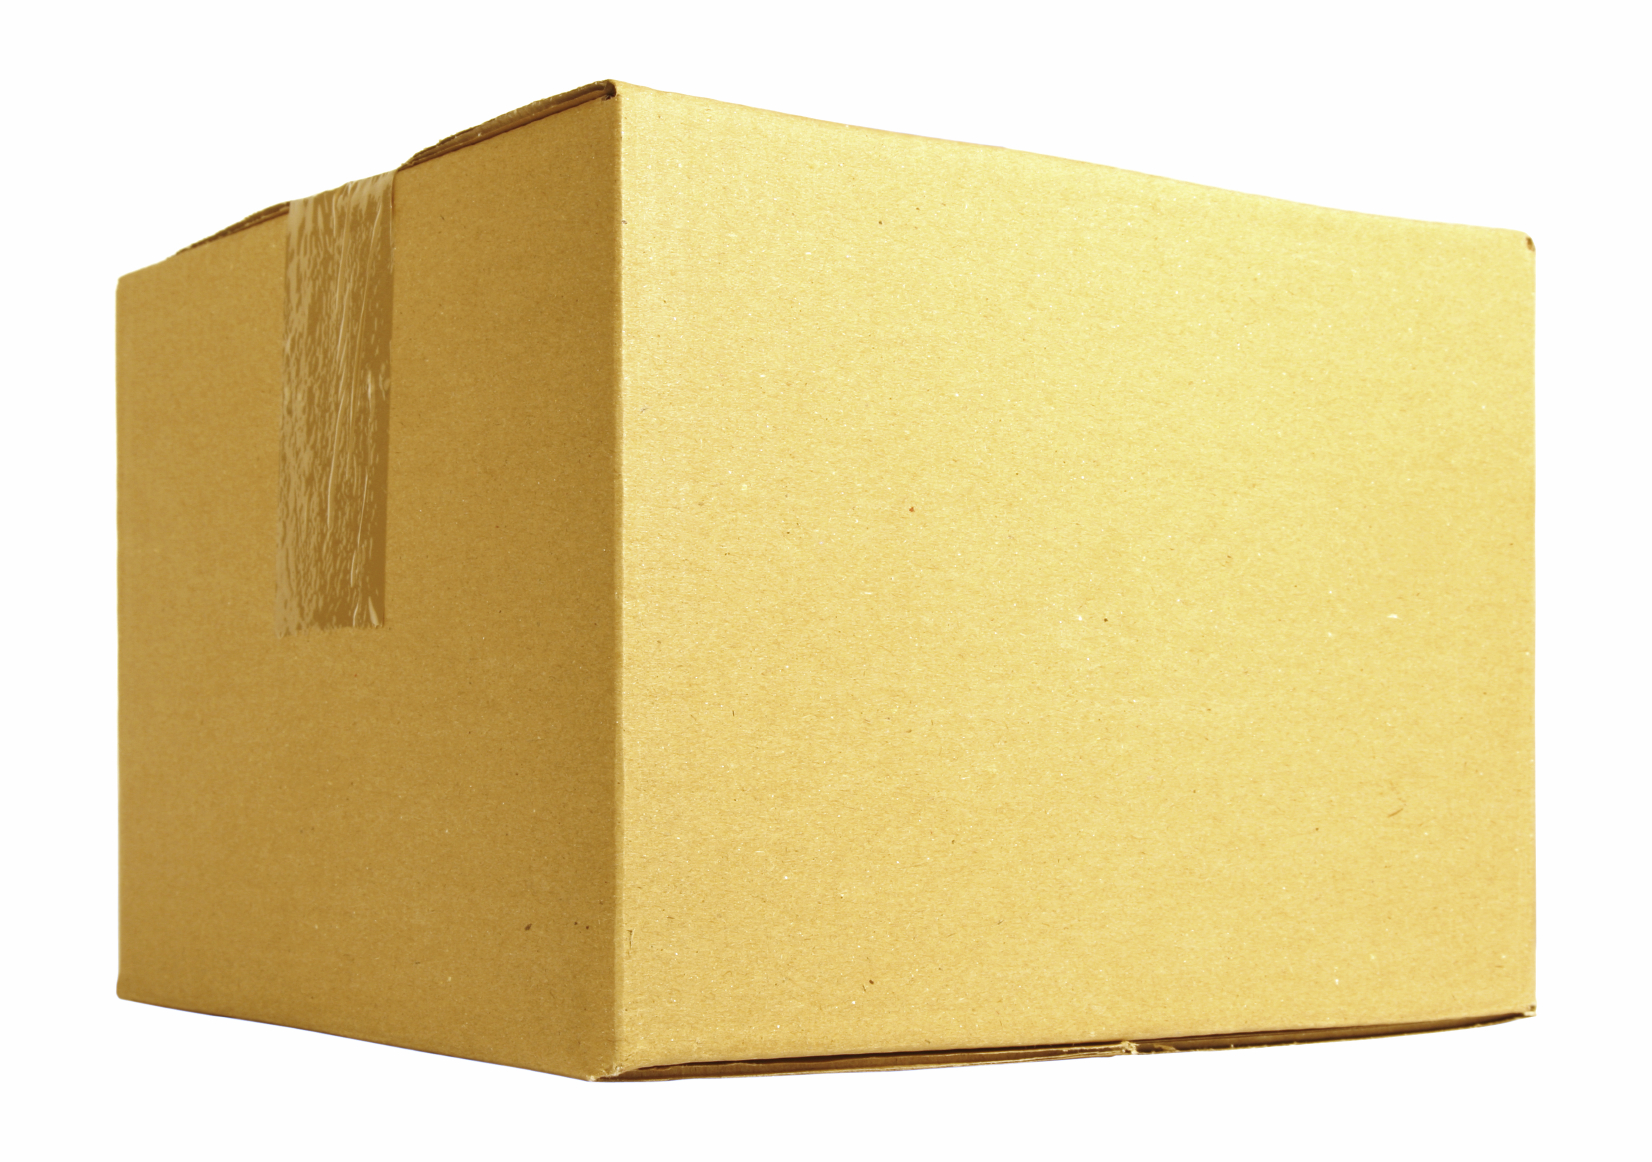 Cardboard technology – could it ever take off?